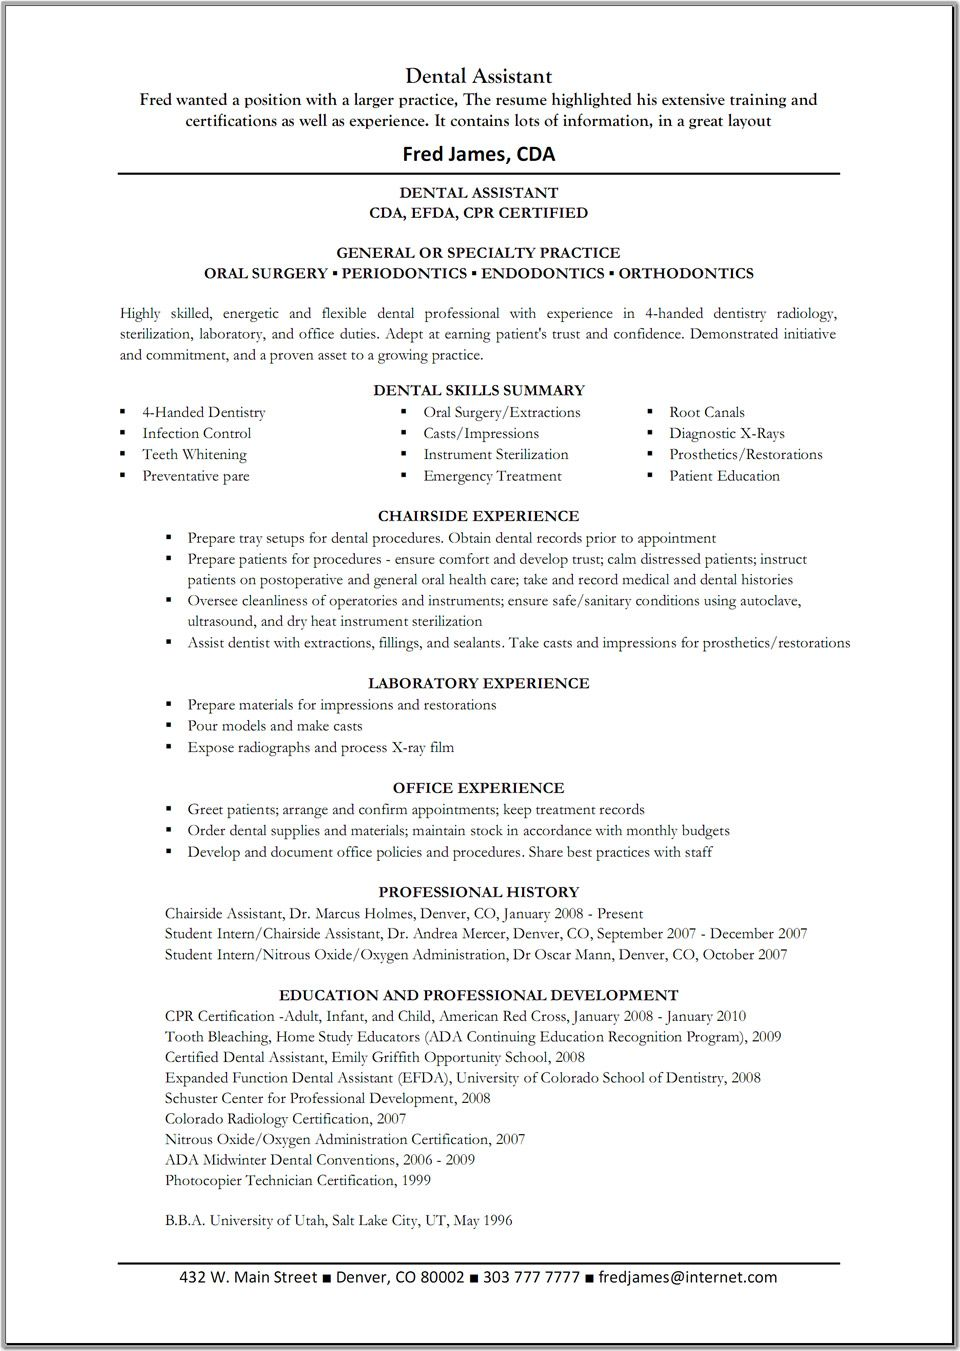 Legal Assistant Resume Simple Dental Assistant Resume Template  Great Resume Templates  Dental